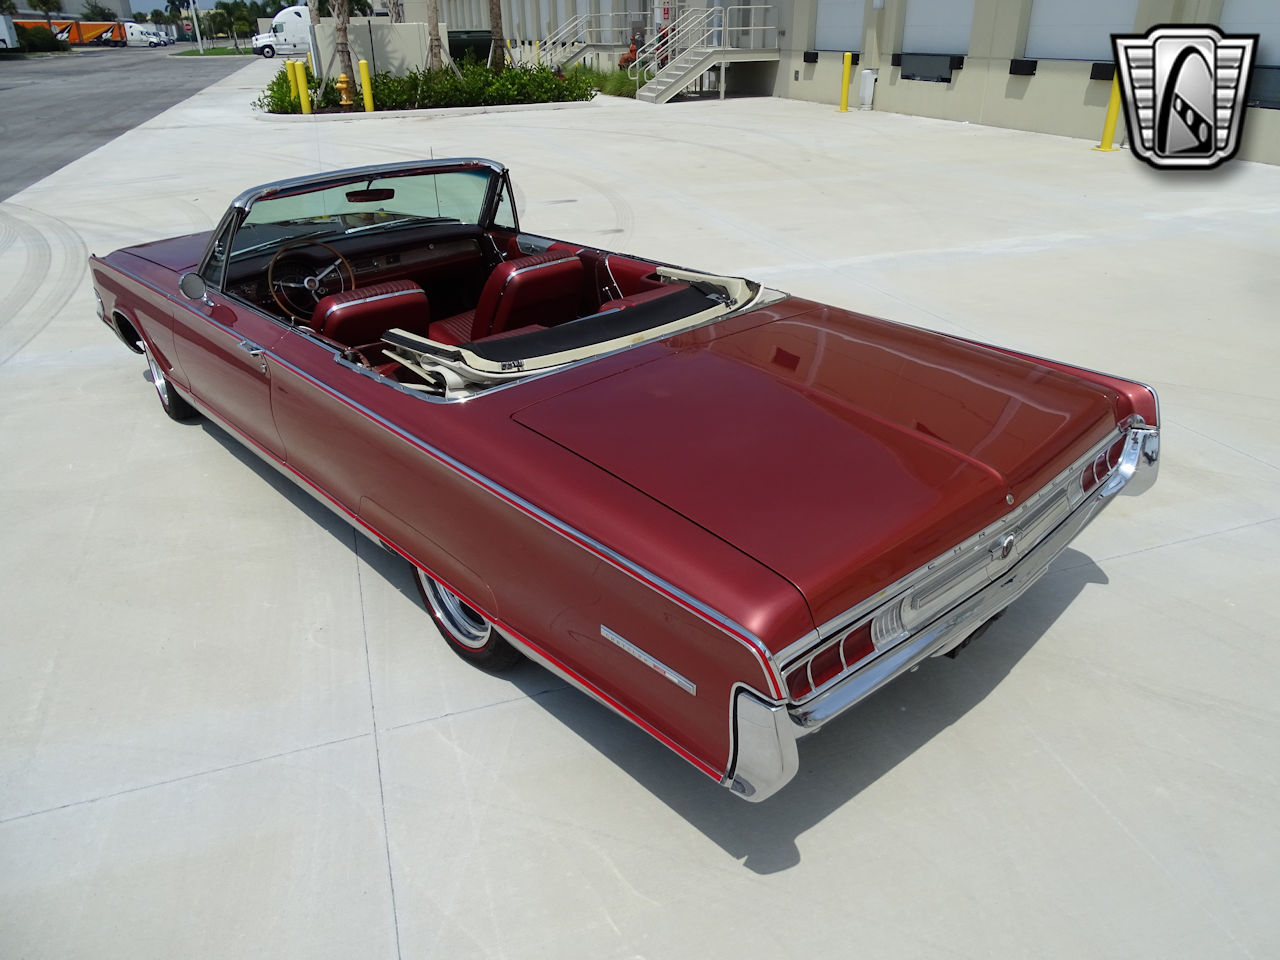 1965 Chrysler 300 41